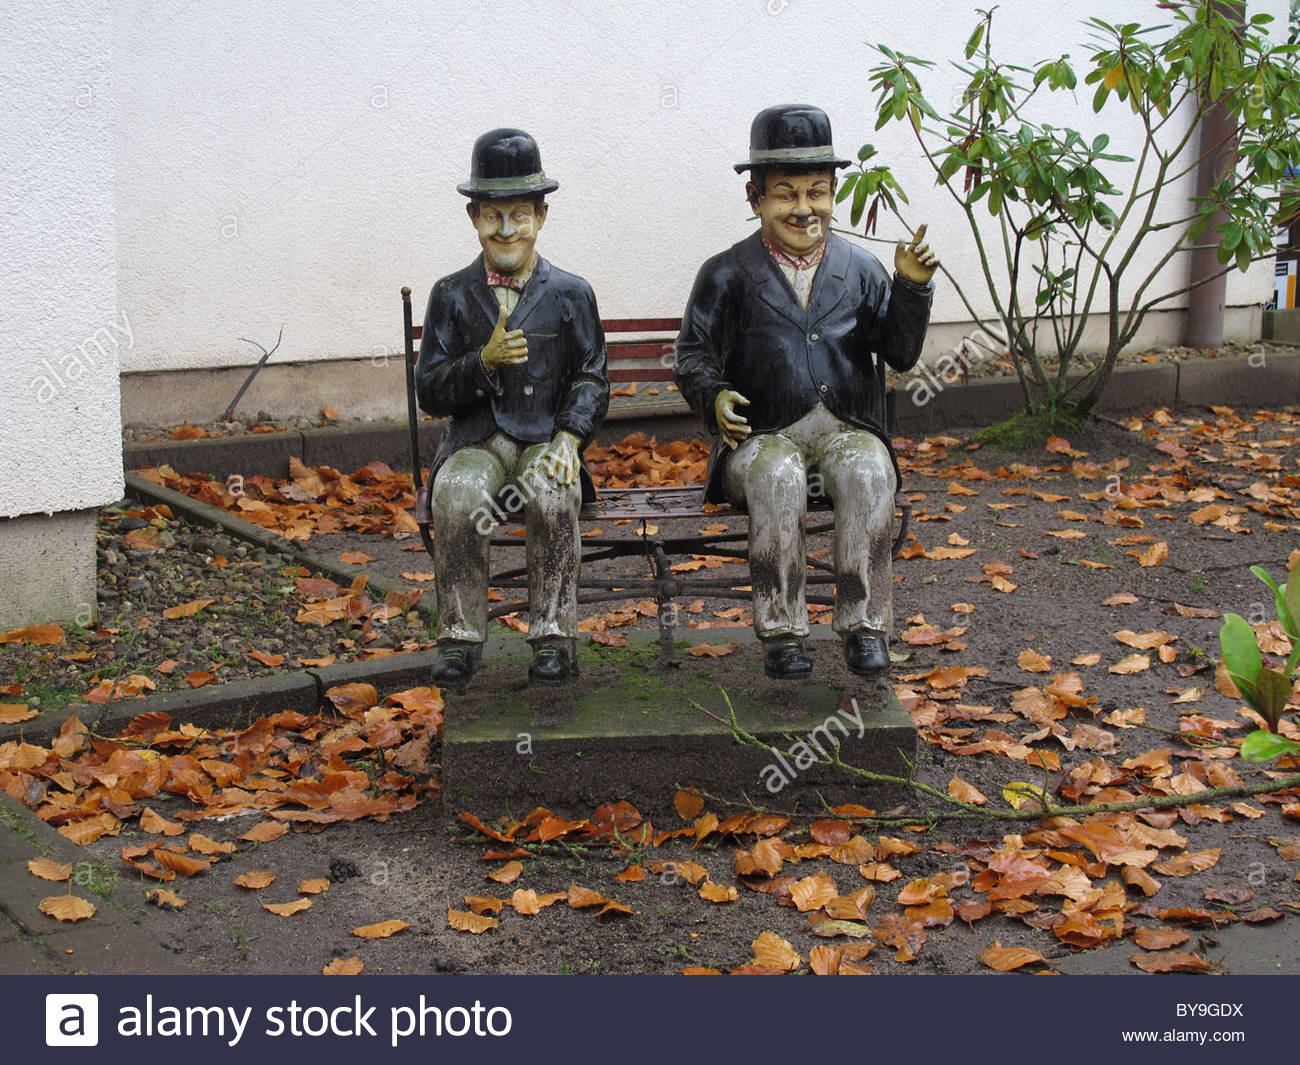 Figures Sitting Bench Stock Photos & Figures Sitting Bench Stock.